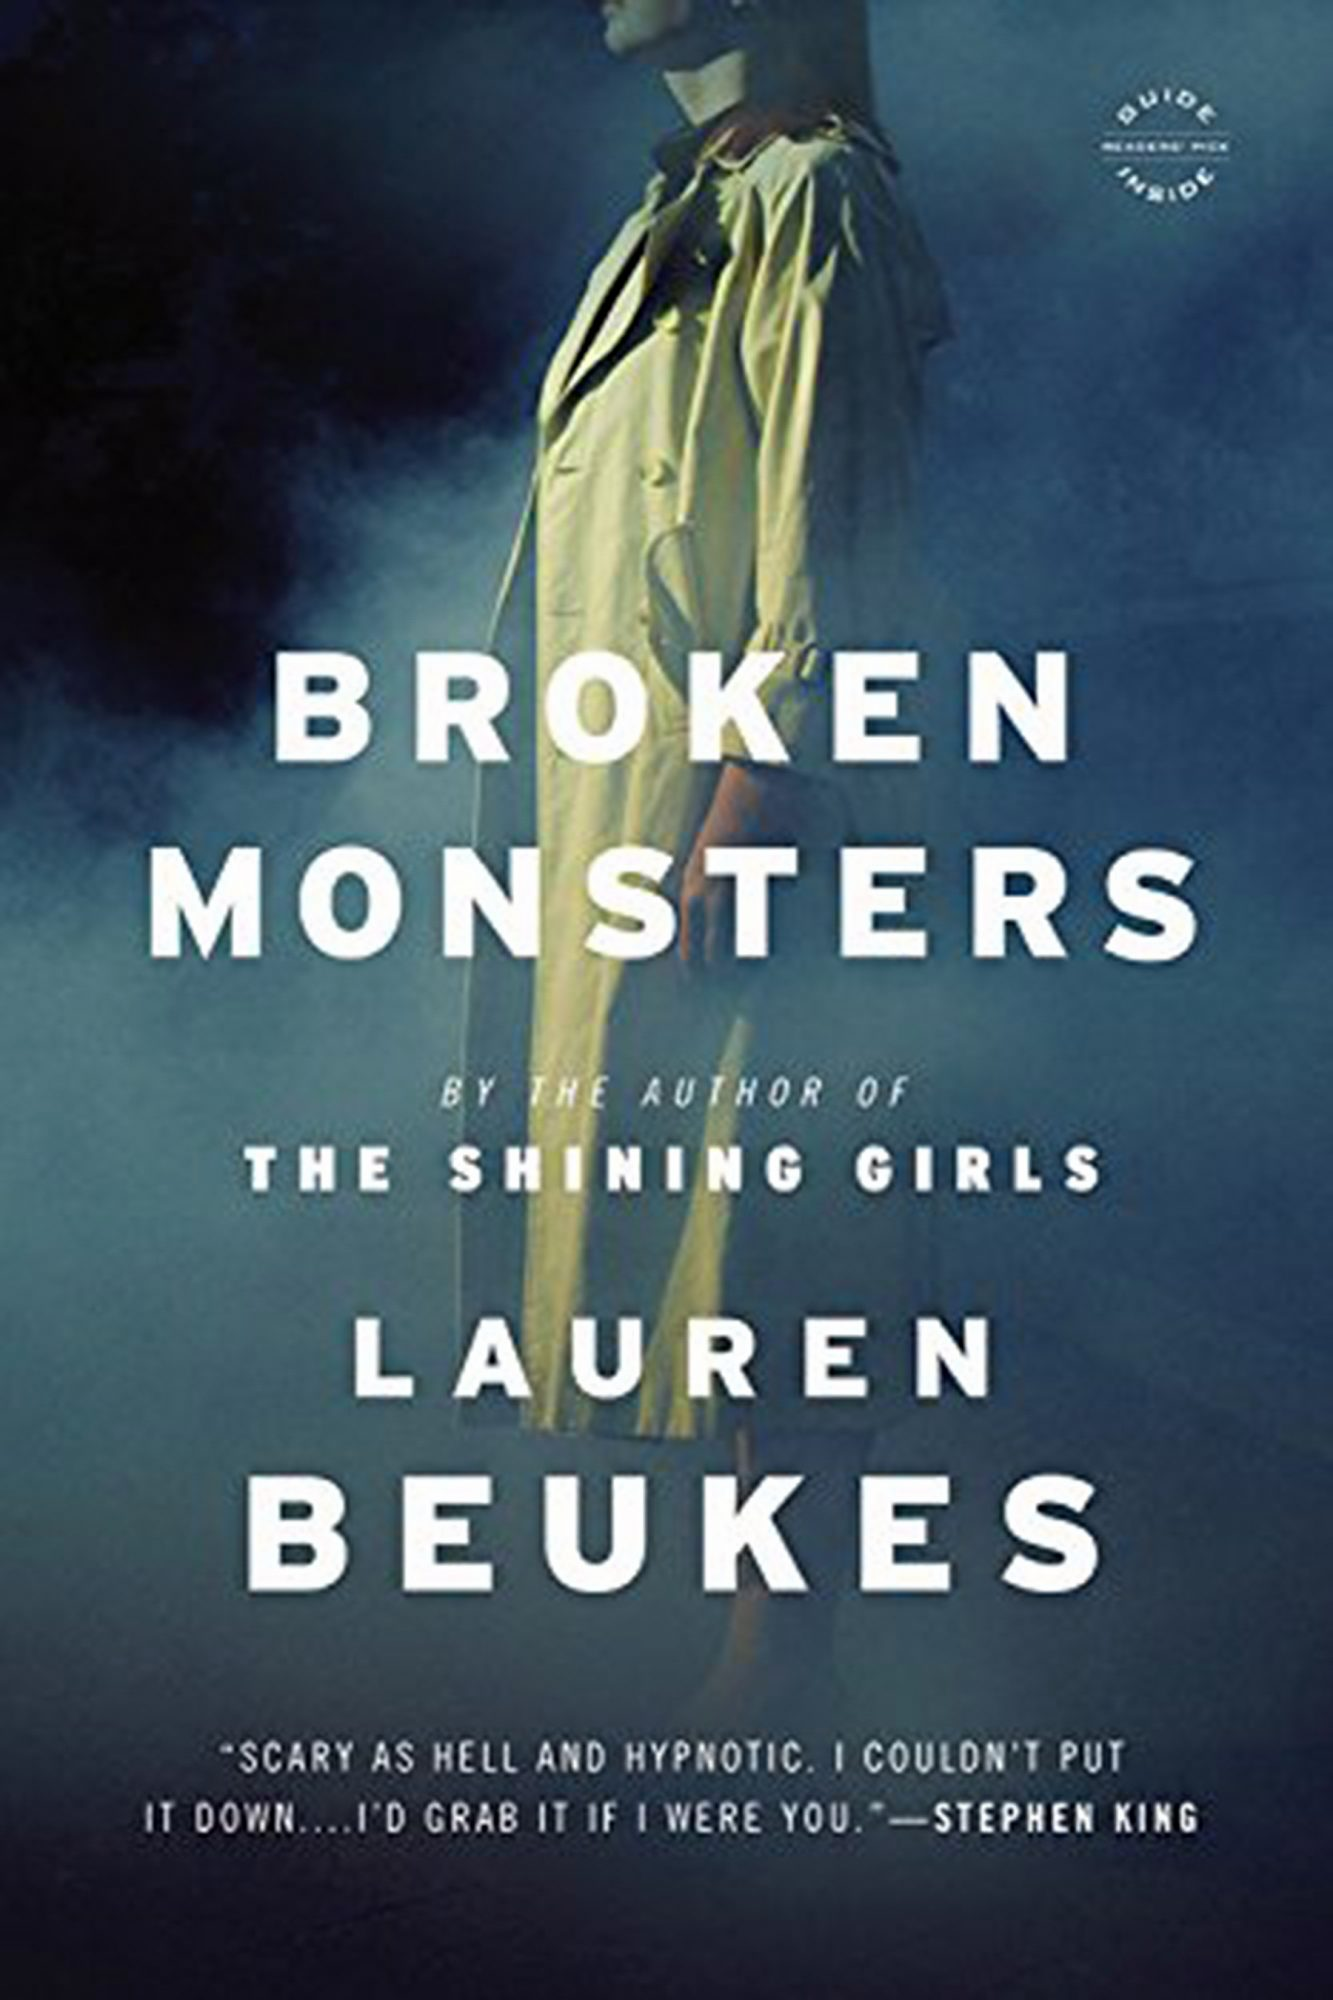 Lauren-Beukes-broken-monsters